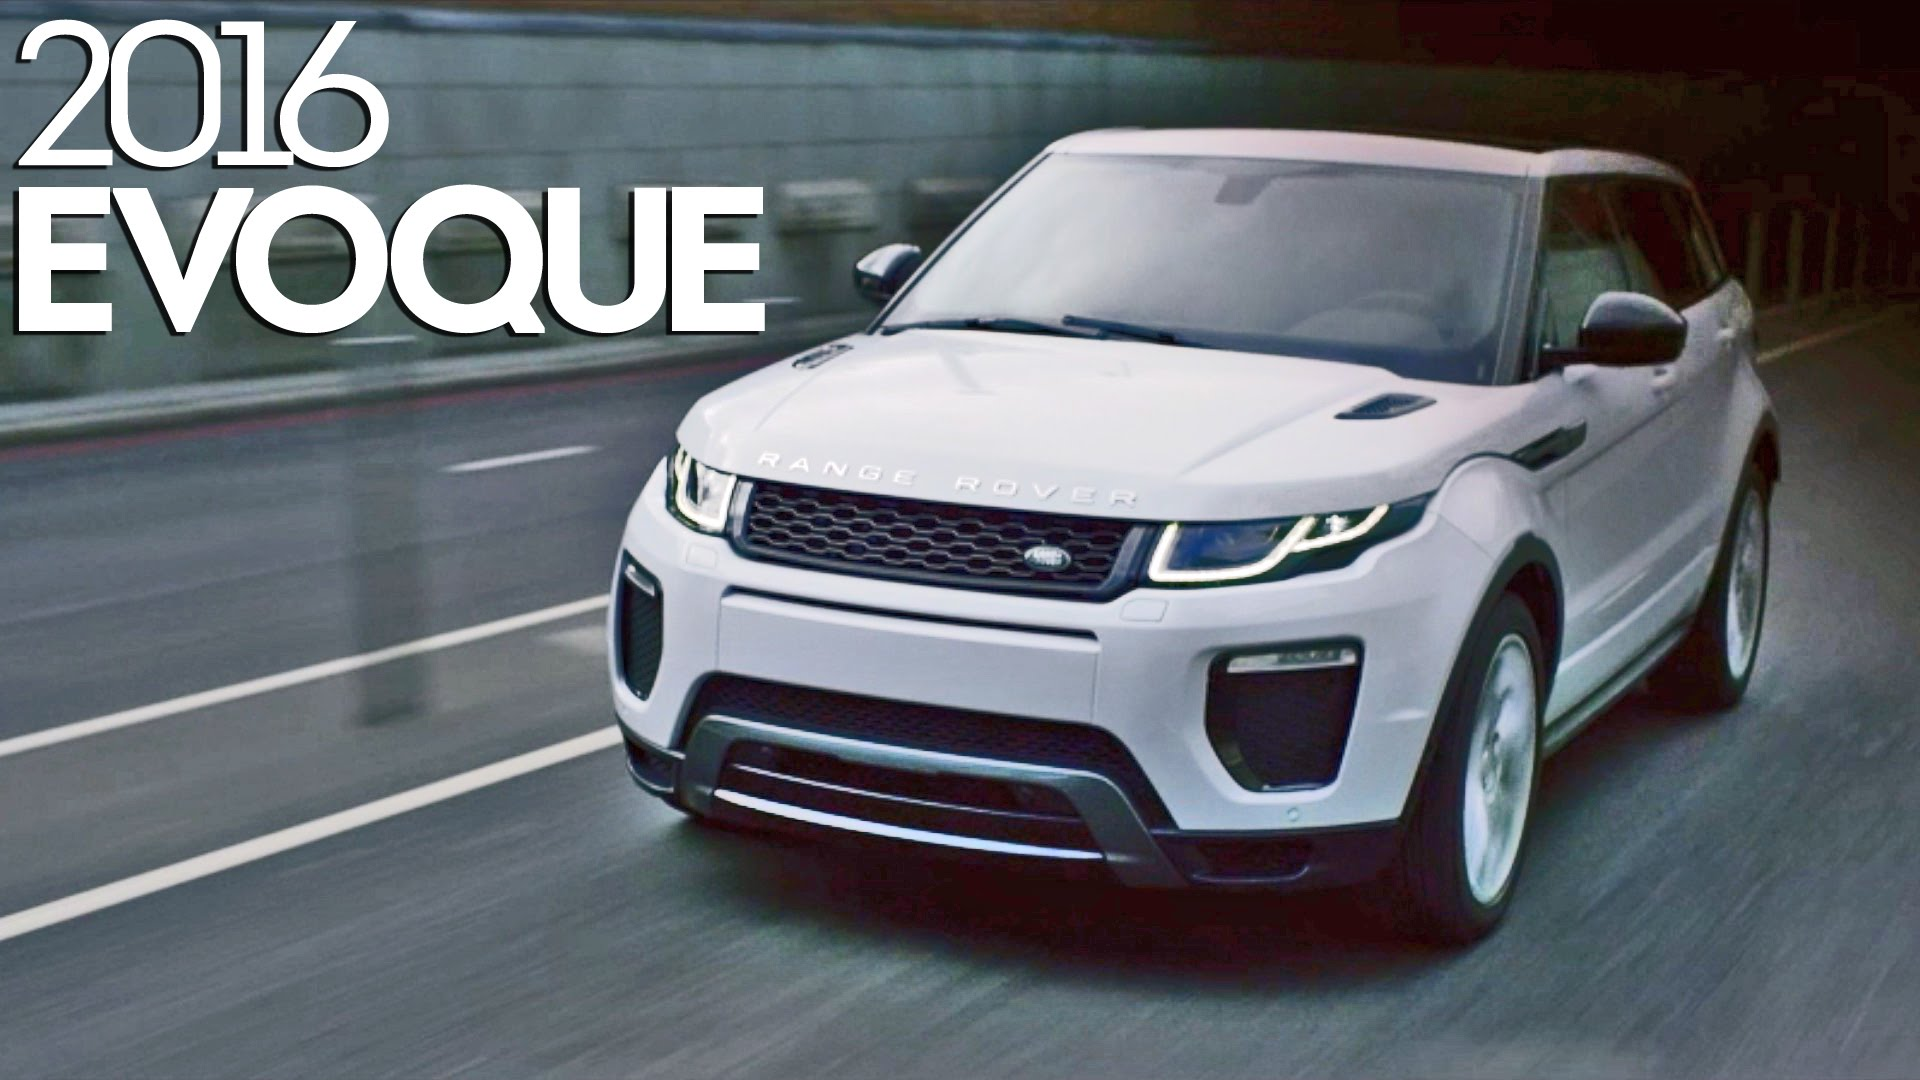 Nuova Range Rover Evoque 2016: Video Youtube